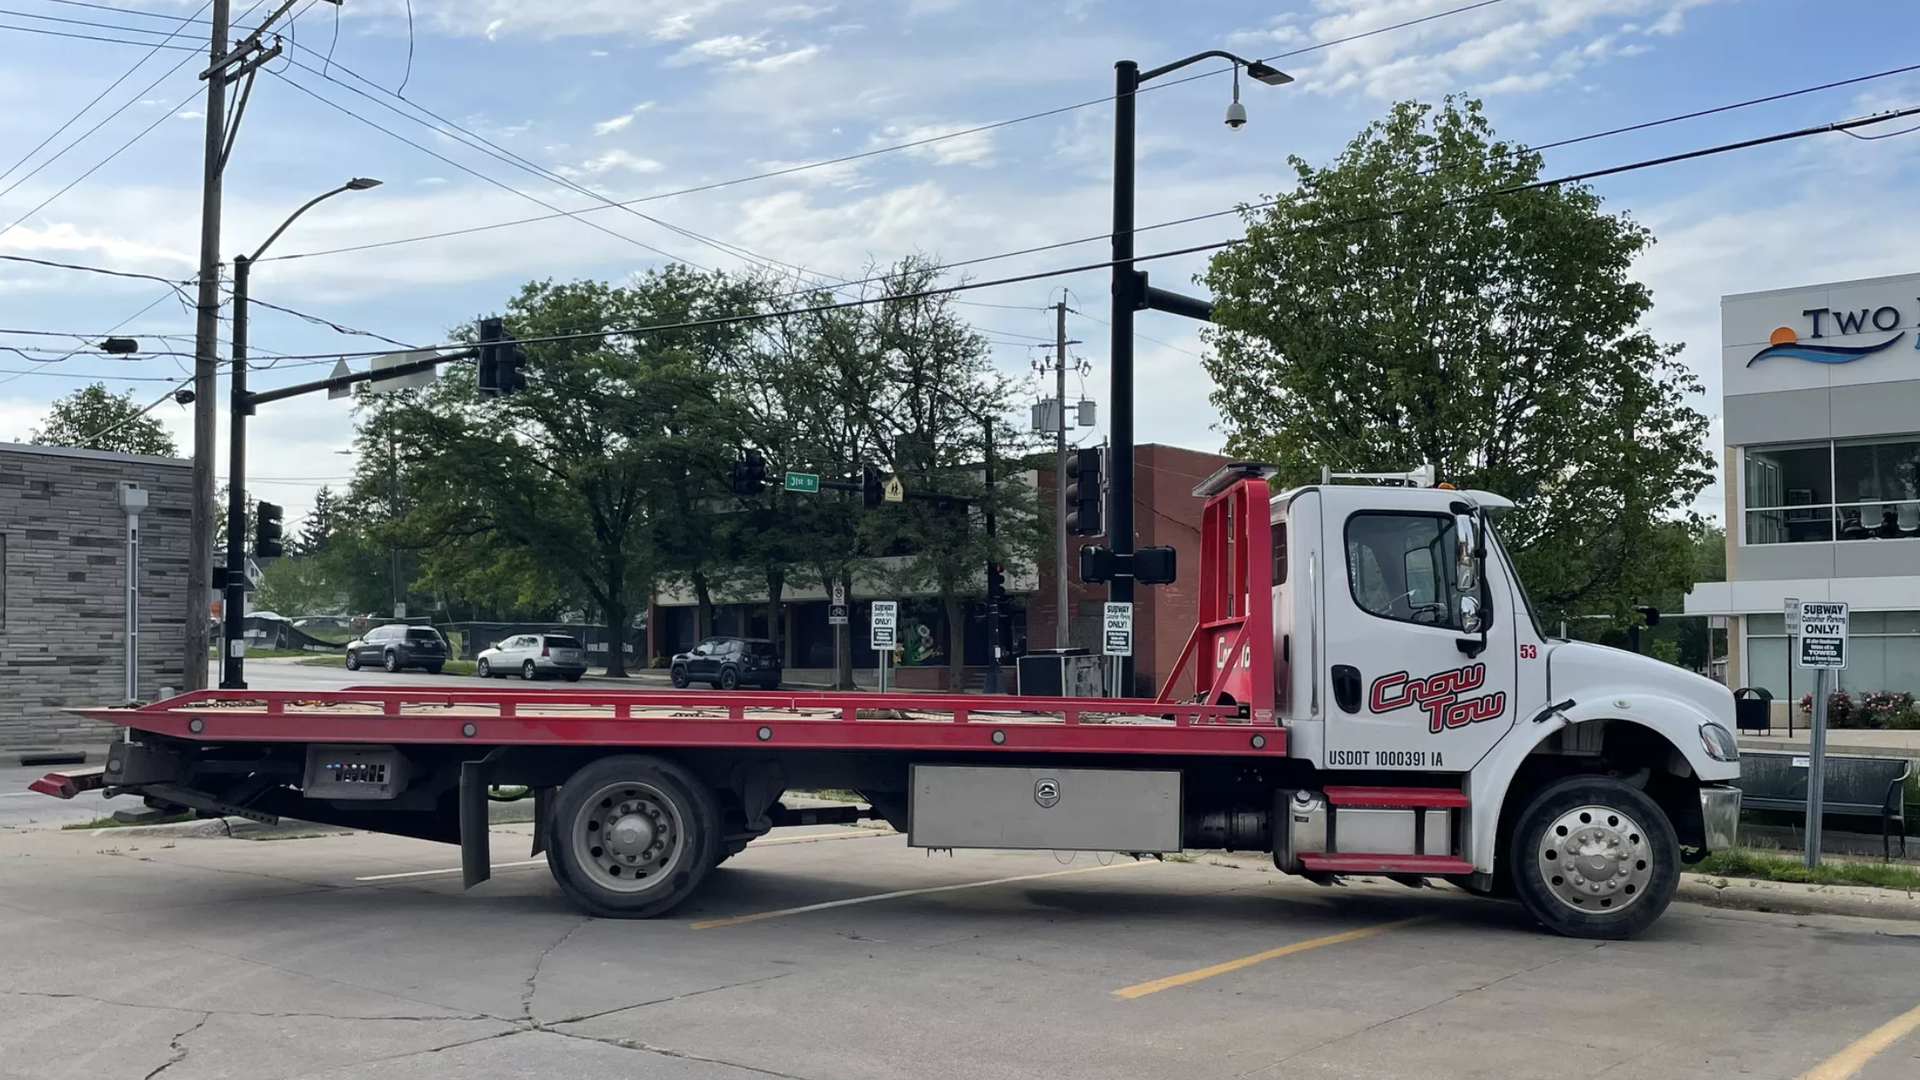 A Crow Tow truck in a Subway parking lot off Ingersoll Ave in Des Moines, Iowa.